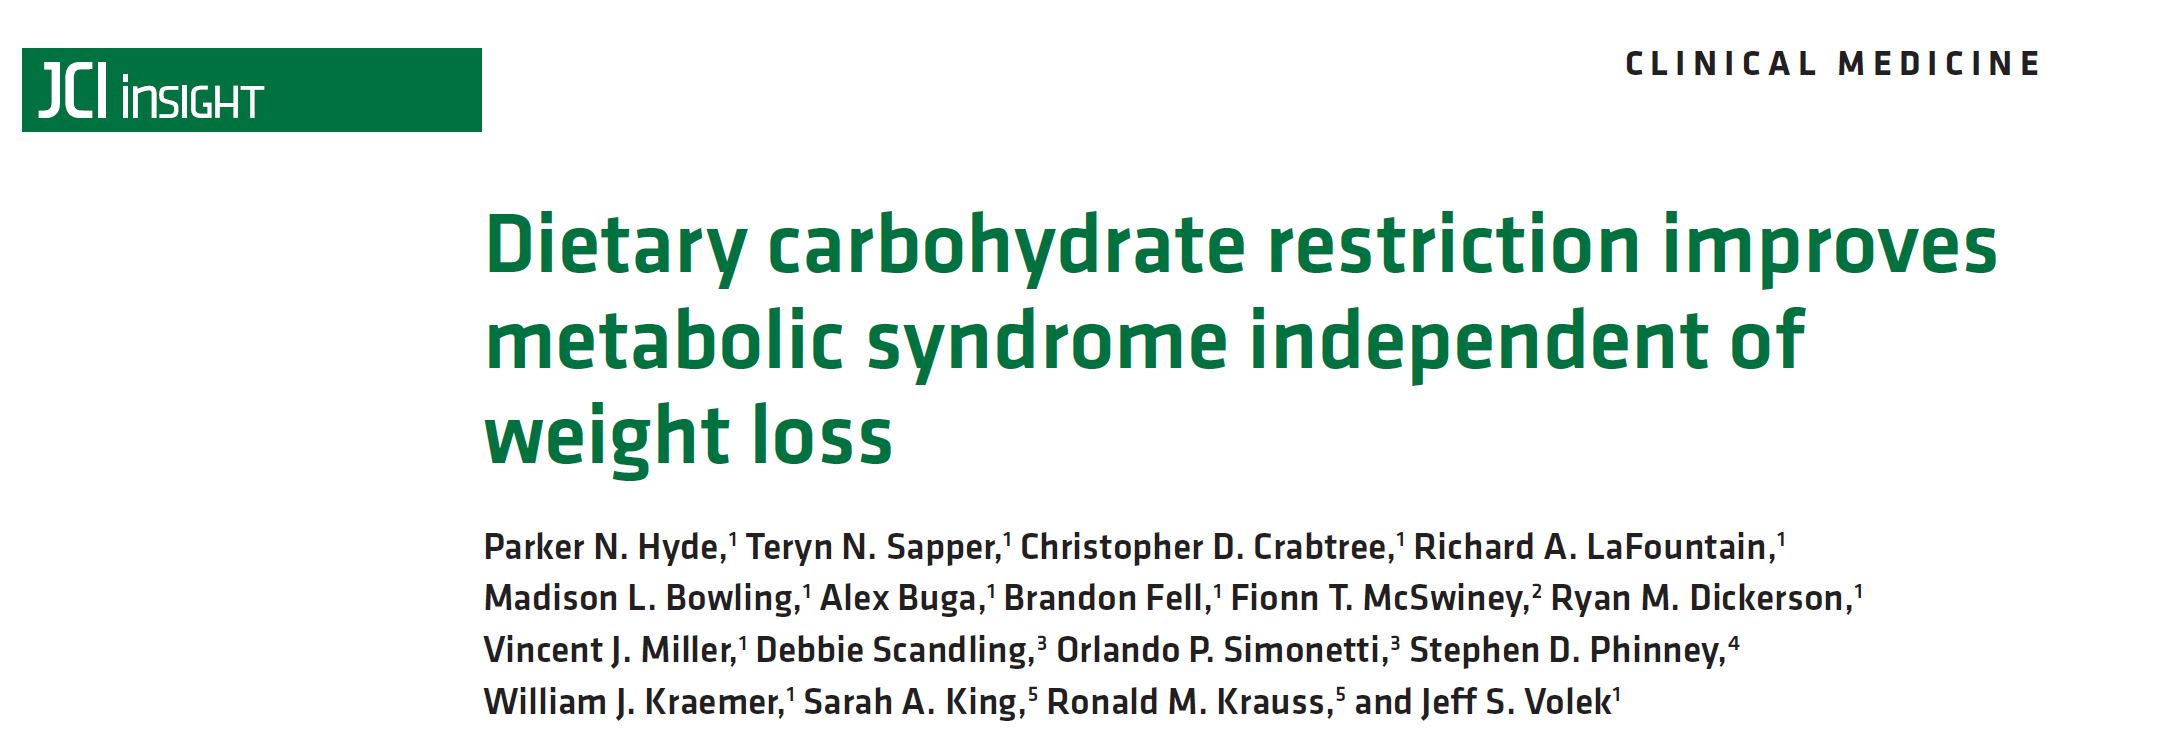 Dietary carbohydrate restriction improves metabolic syndrome independent of weight loss